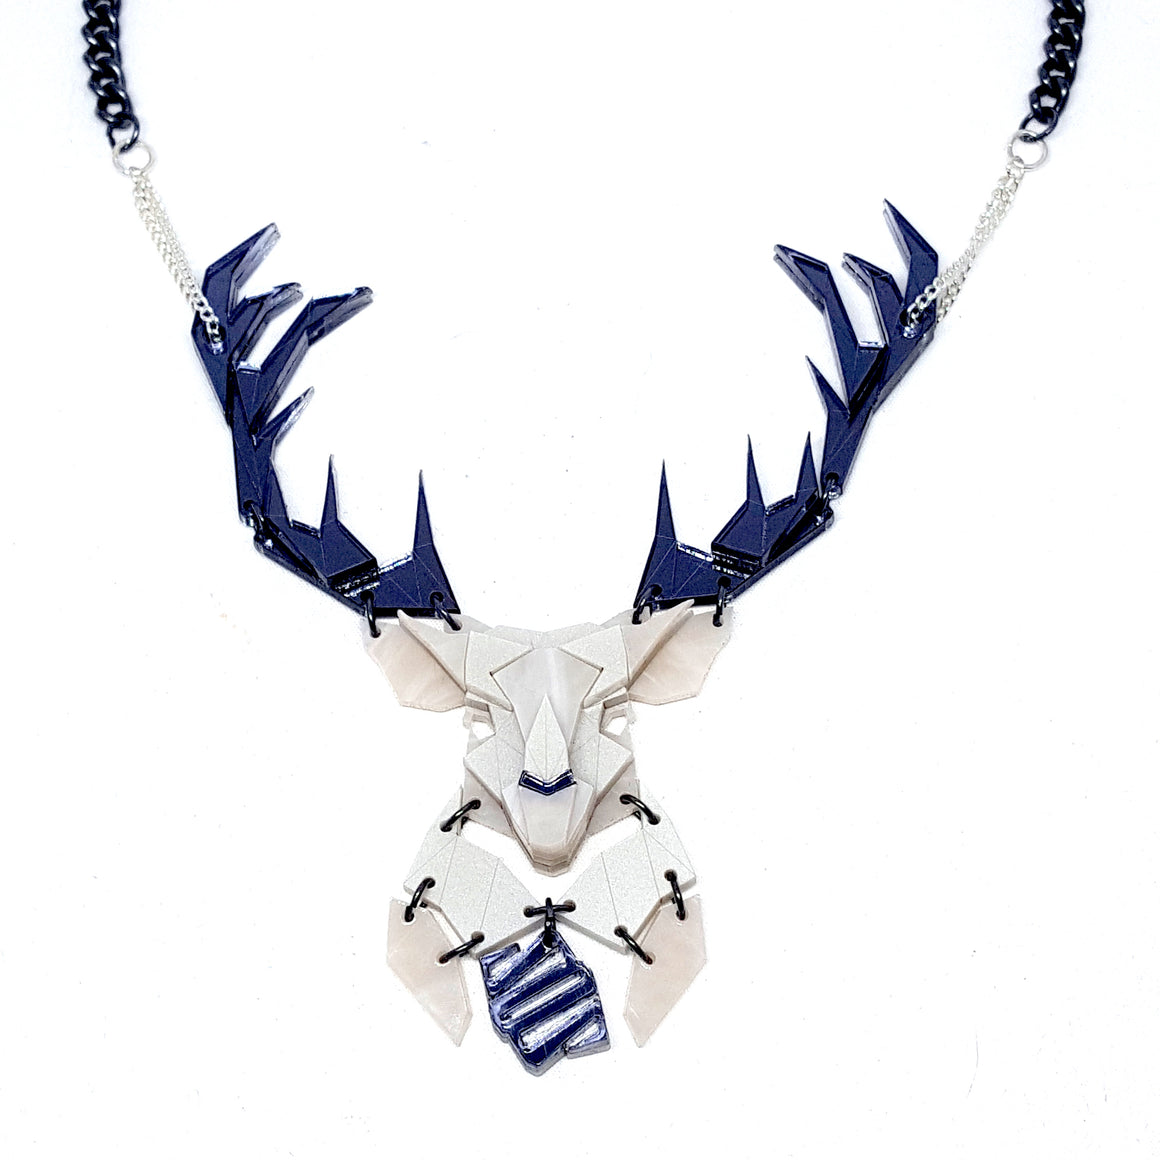 Emperor Stag Necklace (Faint) by Sstutter